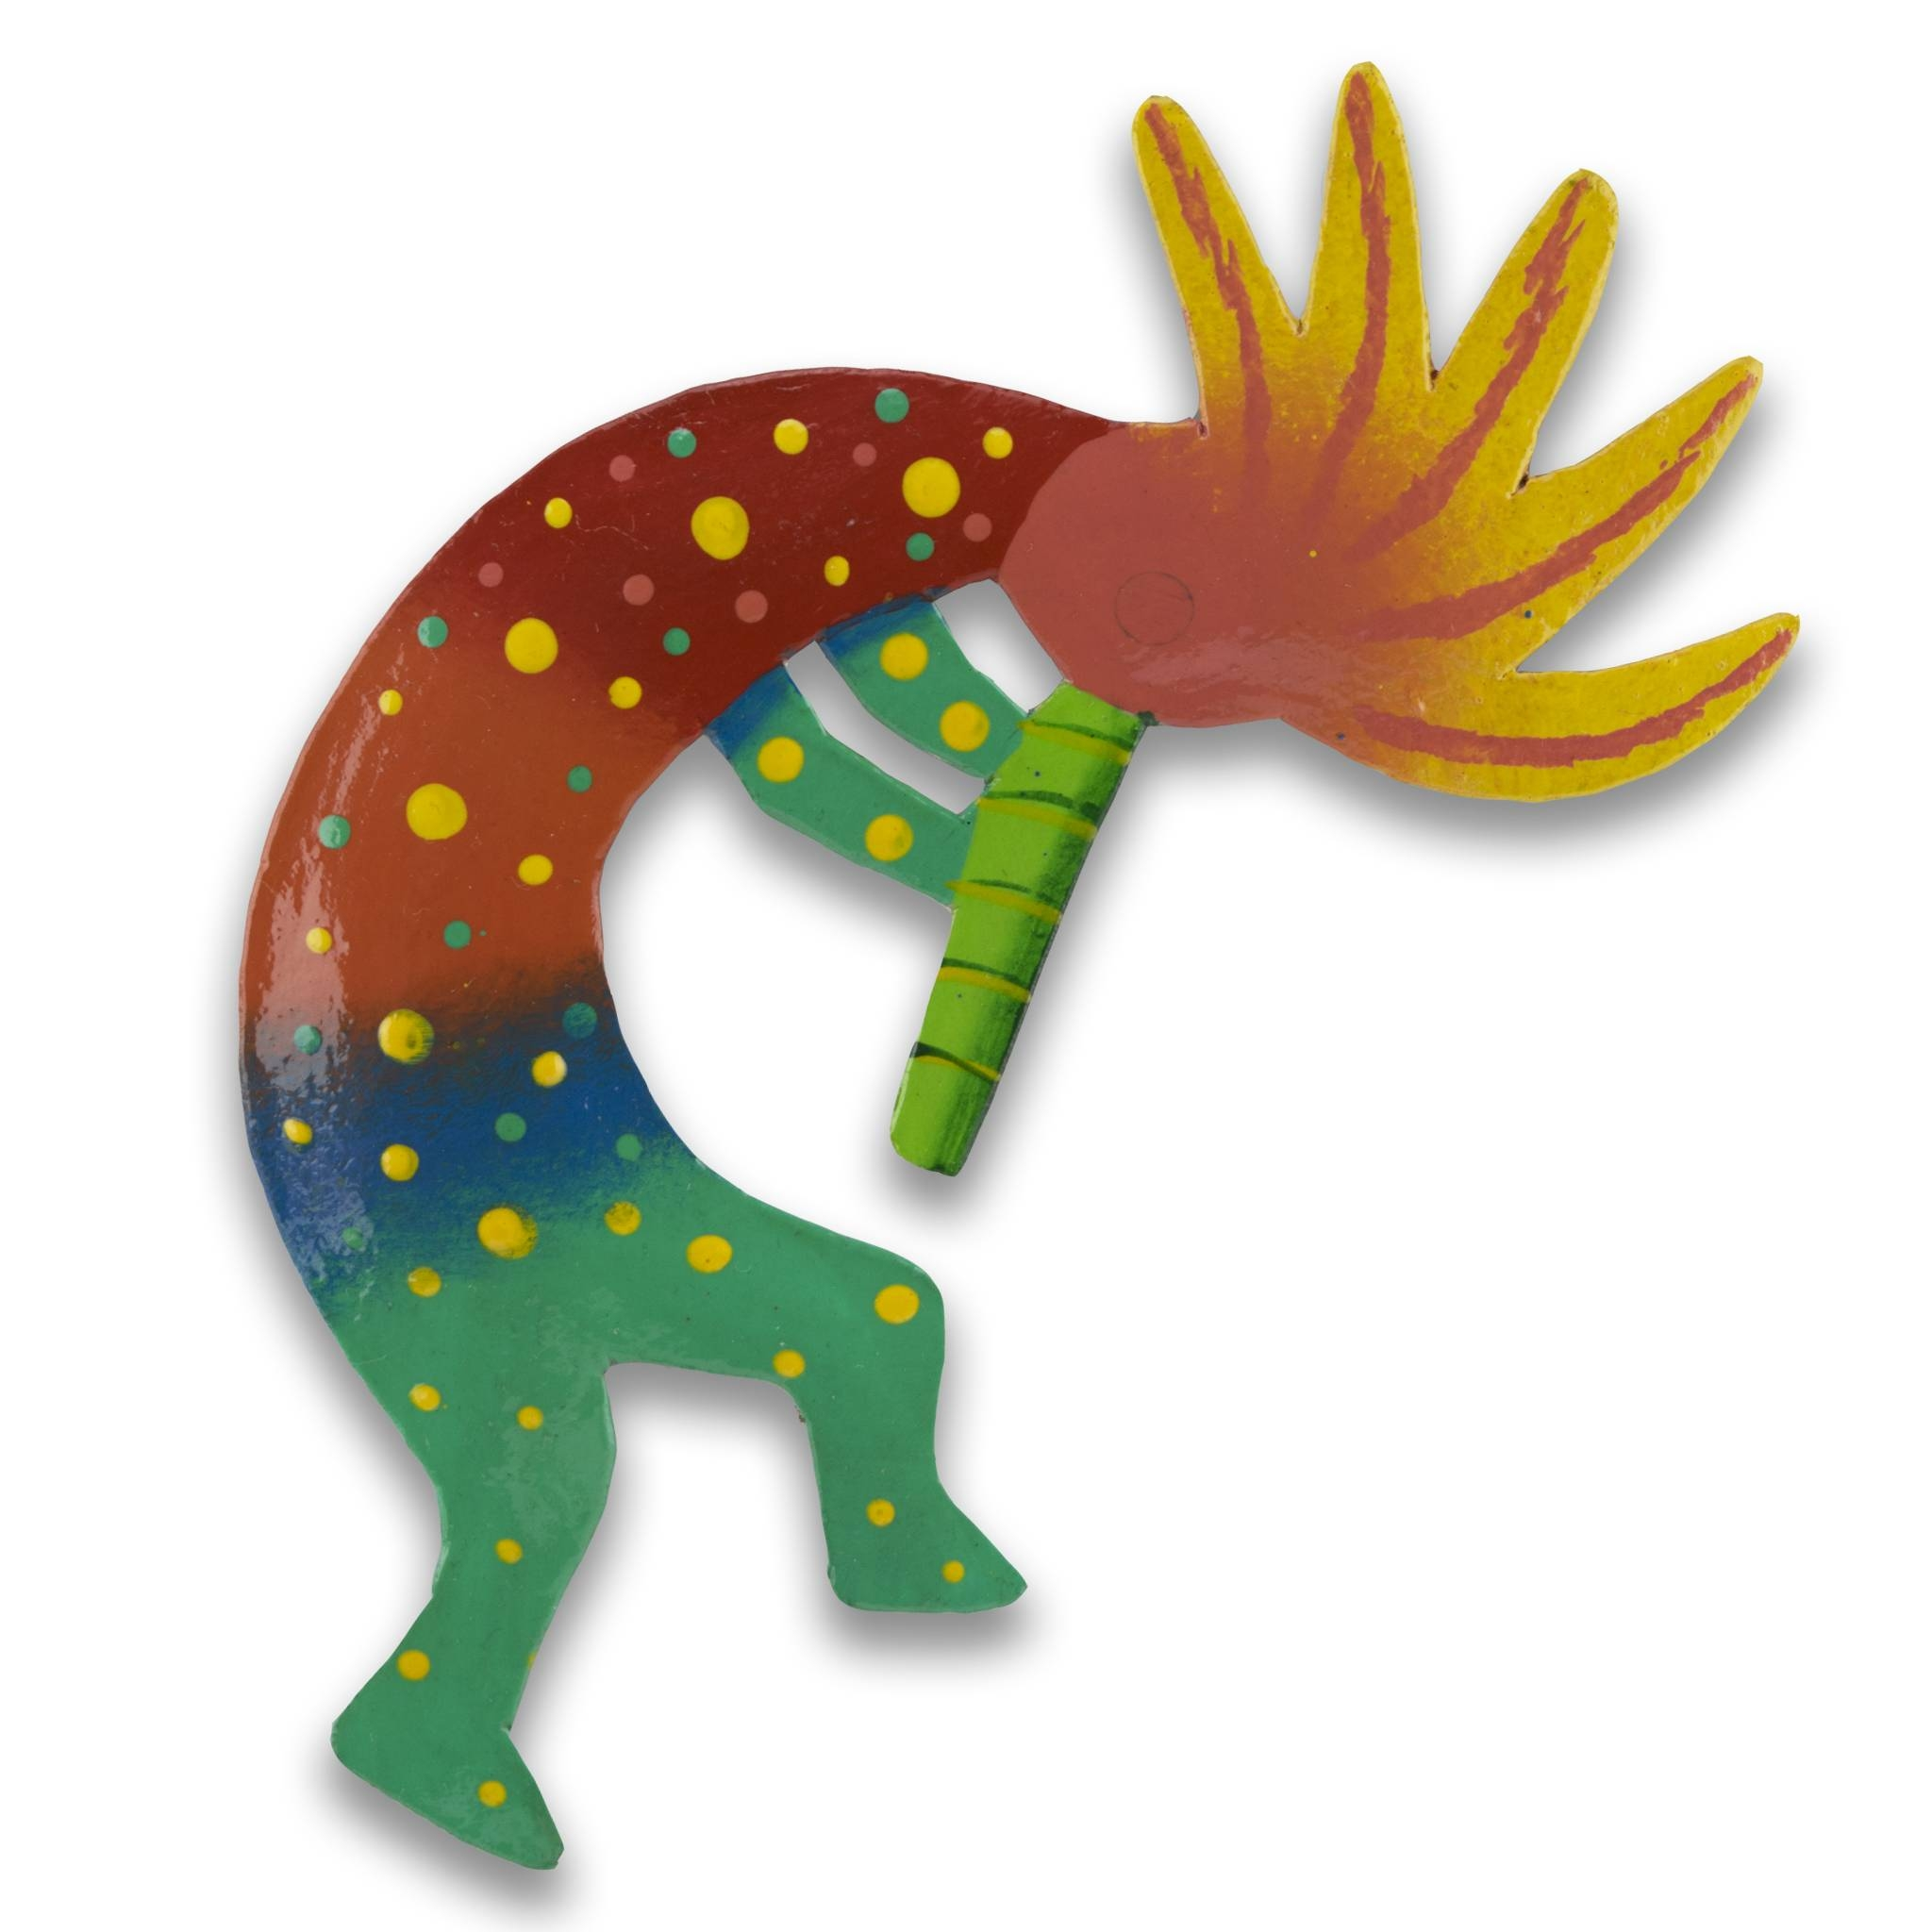 Km Imports Inc | Wholesale Tropical Decor, Home Accents Haiti With Latest Gecko Metal Wall Art (Gallery 10 of 20)